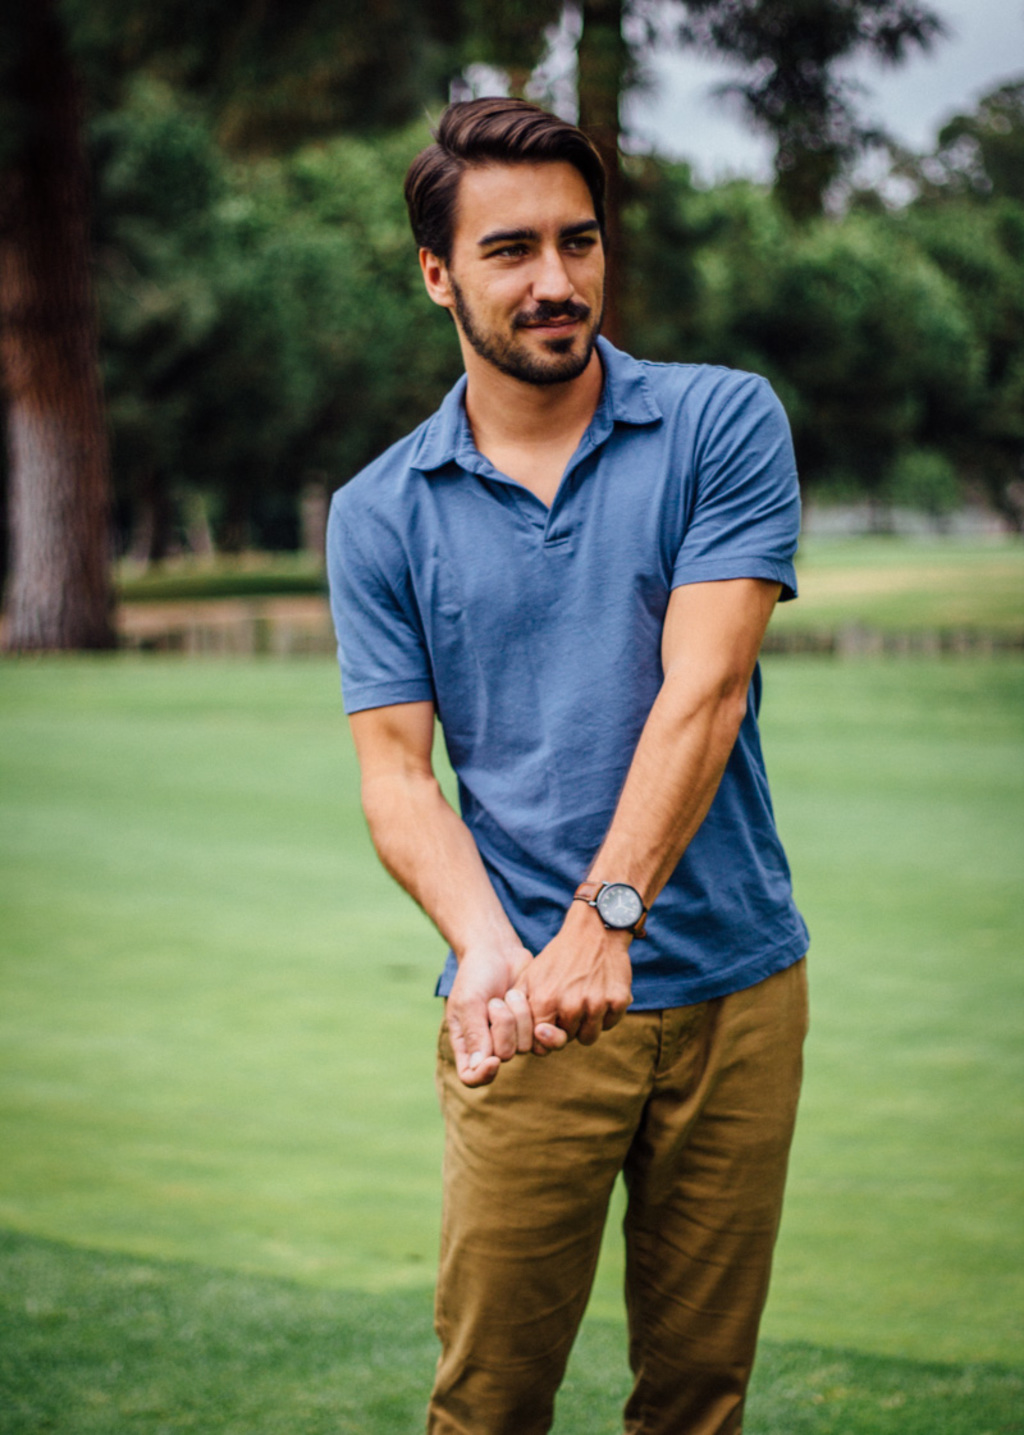 Pistol Lake polo in slate | Get it here: http://bit.ly/1TbETWX